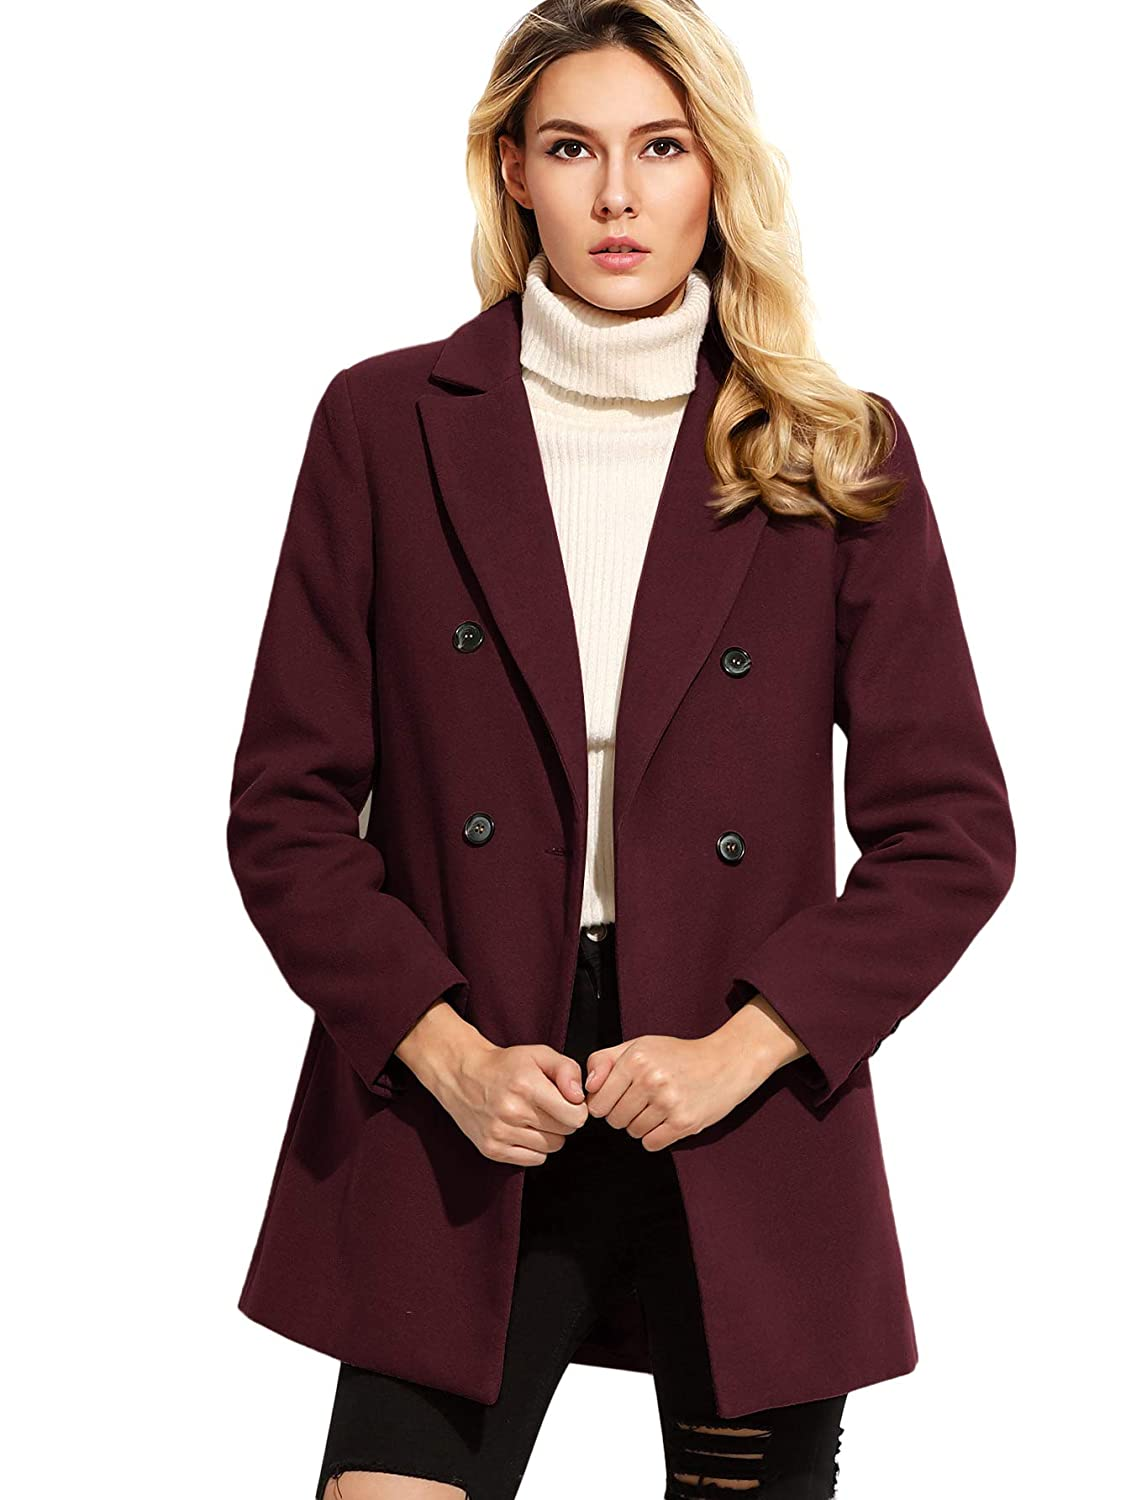 MAKEMECHIC Womens Basic Double Breasted Notched Collar Trench Coat Casual Jacket Overcoat